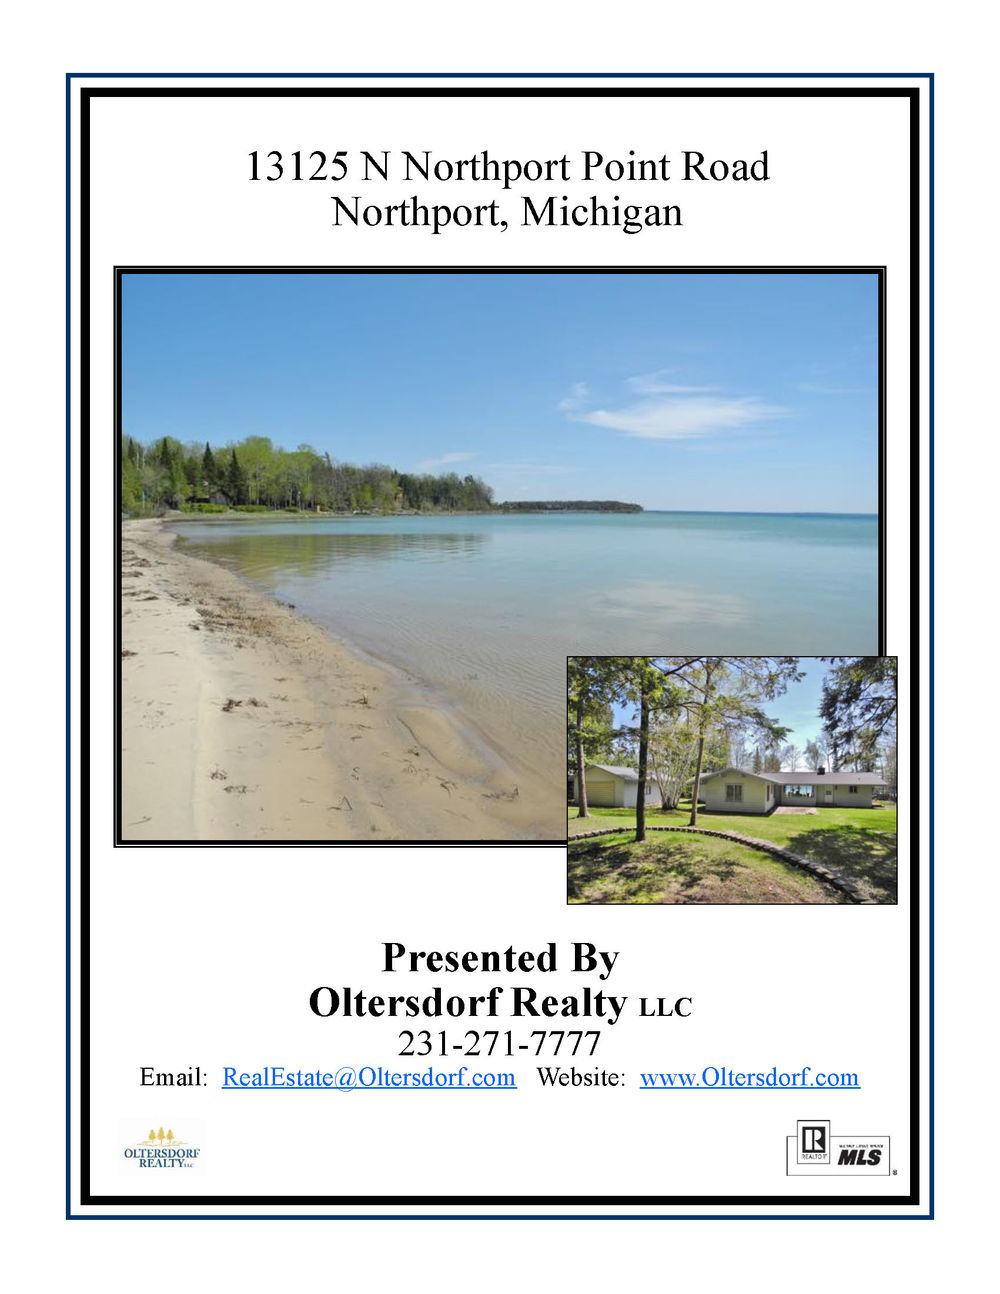 13125 N Northport Point Rd Marketing Packet_Page_01.jpg